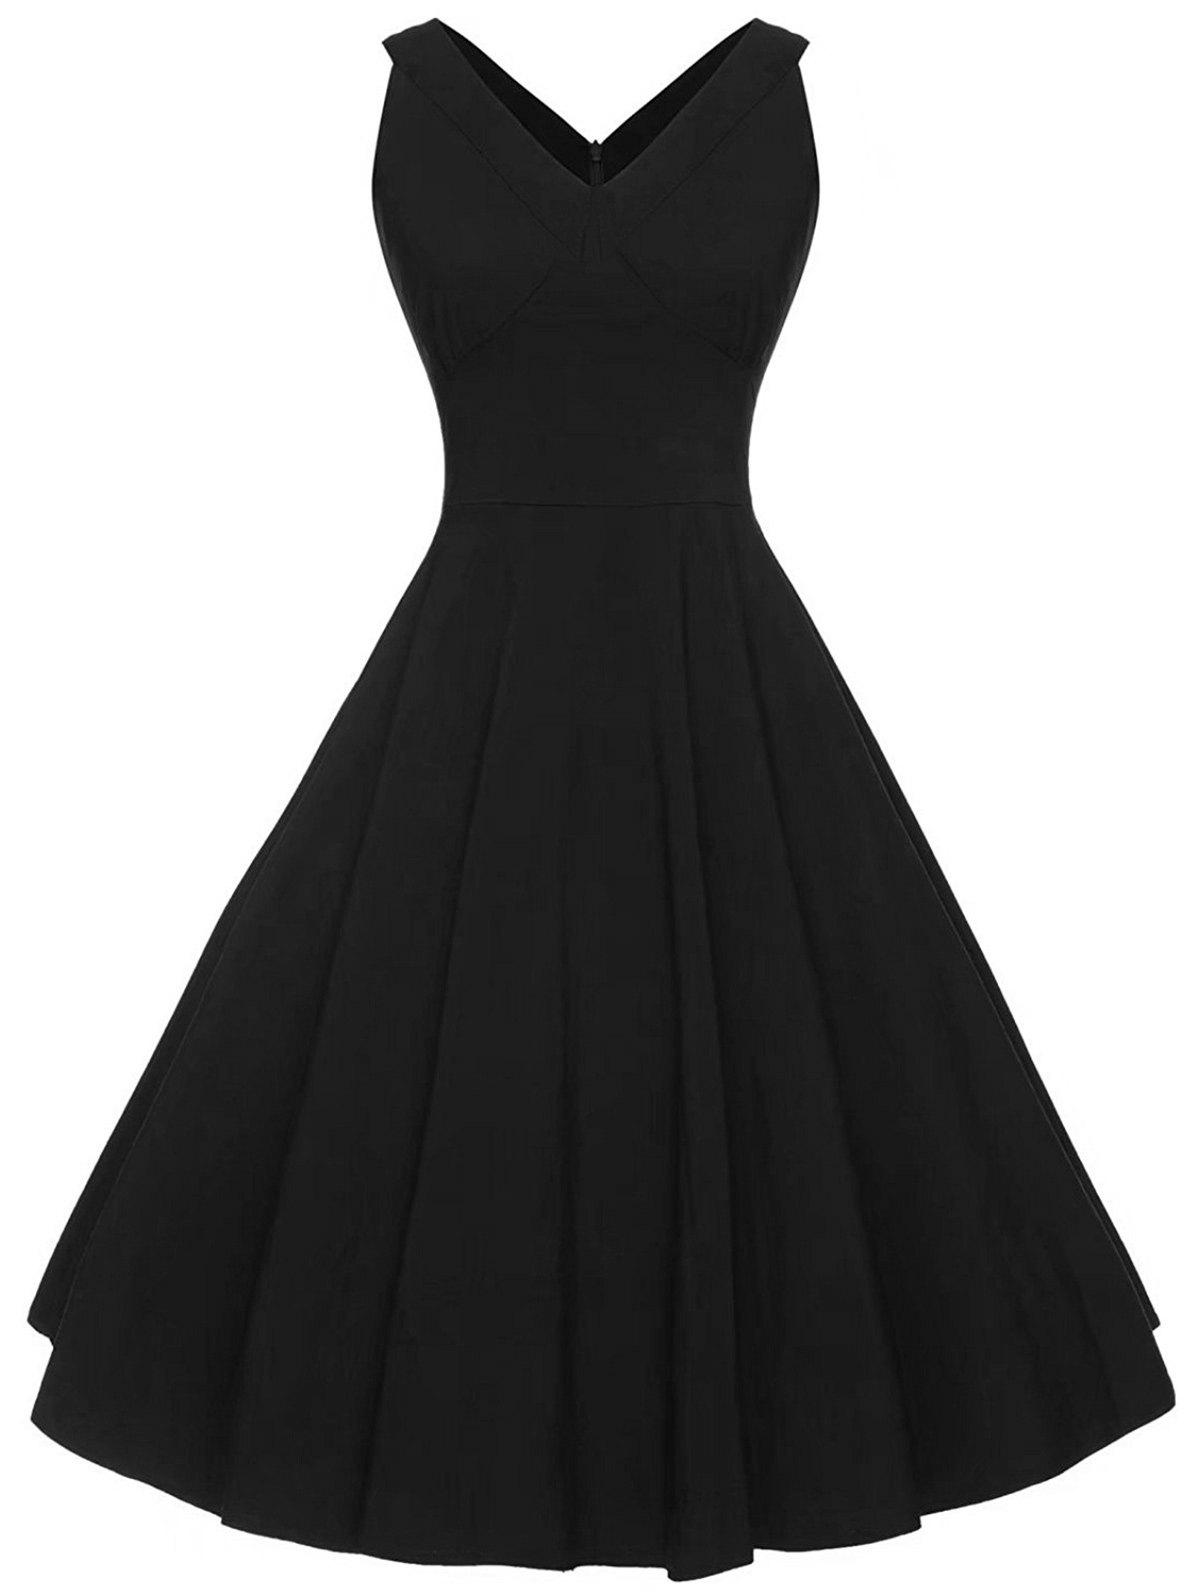 Vintage V-neck Sleeveless DressWOMEN<br><br>Size: S; Color: BLACK; Style: Vintage; Material: Cotton,Polyester; Silhouette: A-Line; Dress Type: Fit and Flare Dress; Dresses Length: Mid-Calf; Neckline: V-Neck; Sleeve Length: Sleeveless; Pattern Type: Solid Color; With Belt: No; Season: Summer; Weight: 0.4000kg; Package Contents: 1 x Dress;